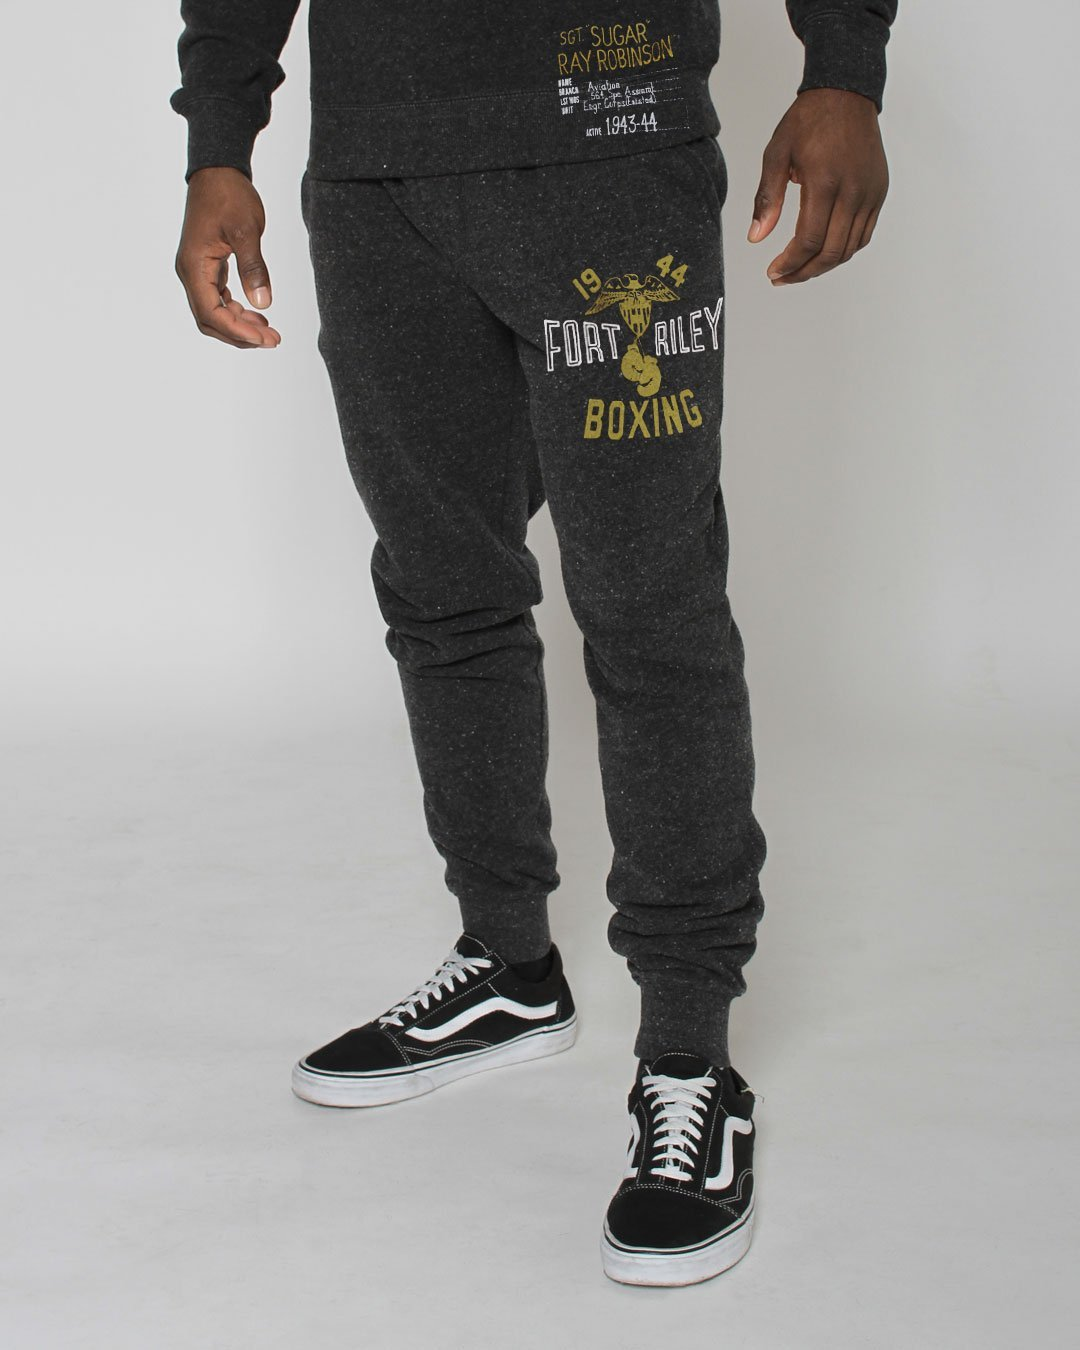 Sugar Ray Robinson Fort Riley Sweatpants - Roots of Inc dba Roots of Fight